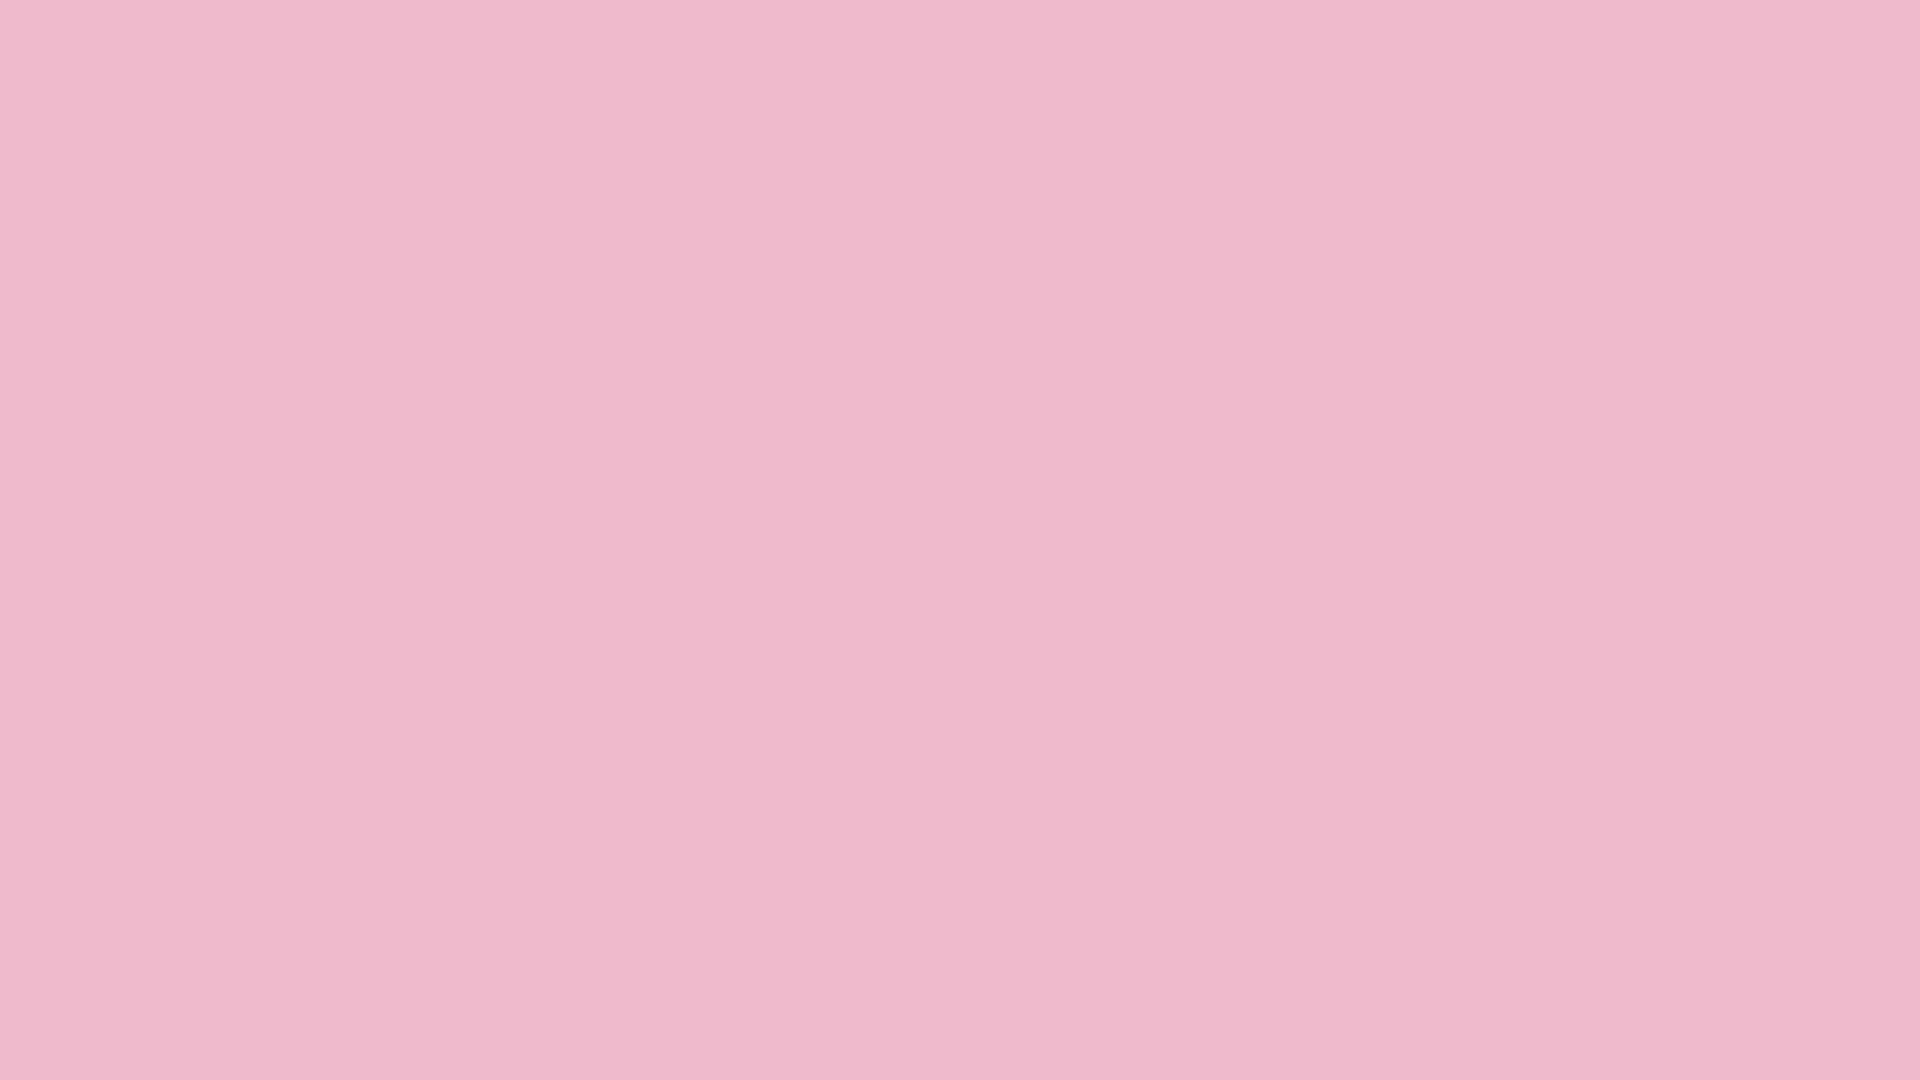 1920x1080 Cameo Pink Solid Color Background